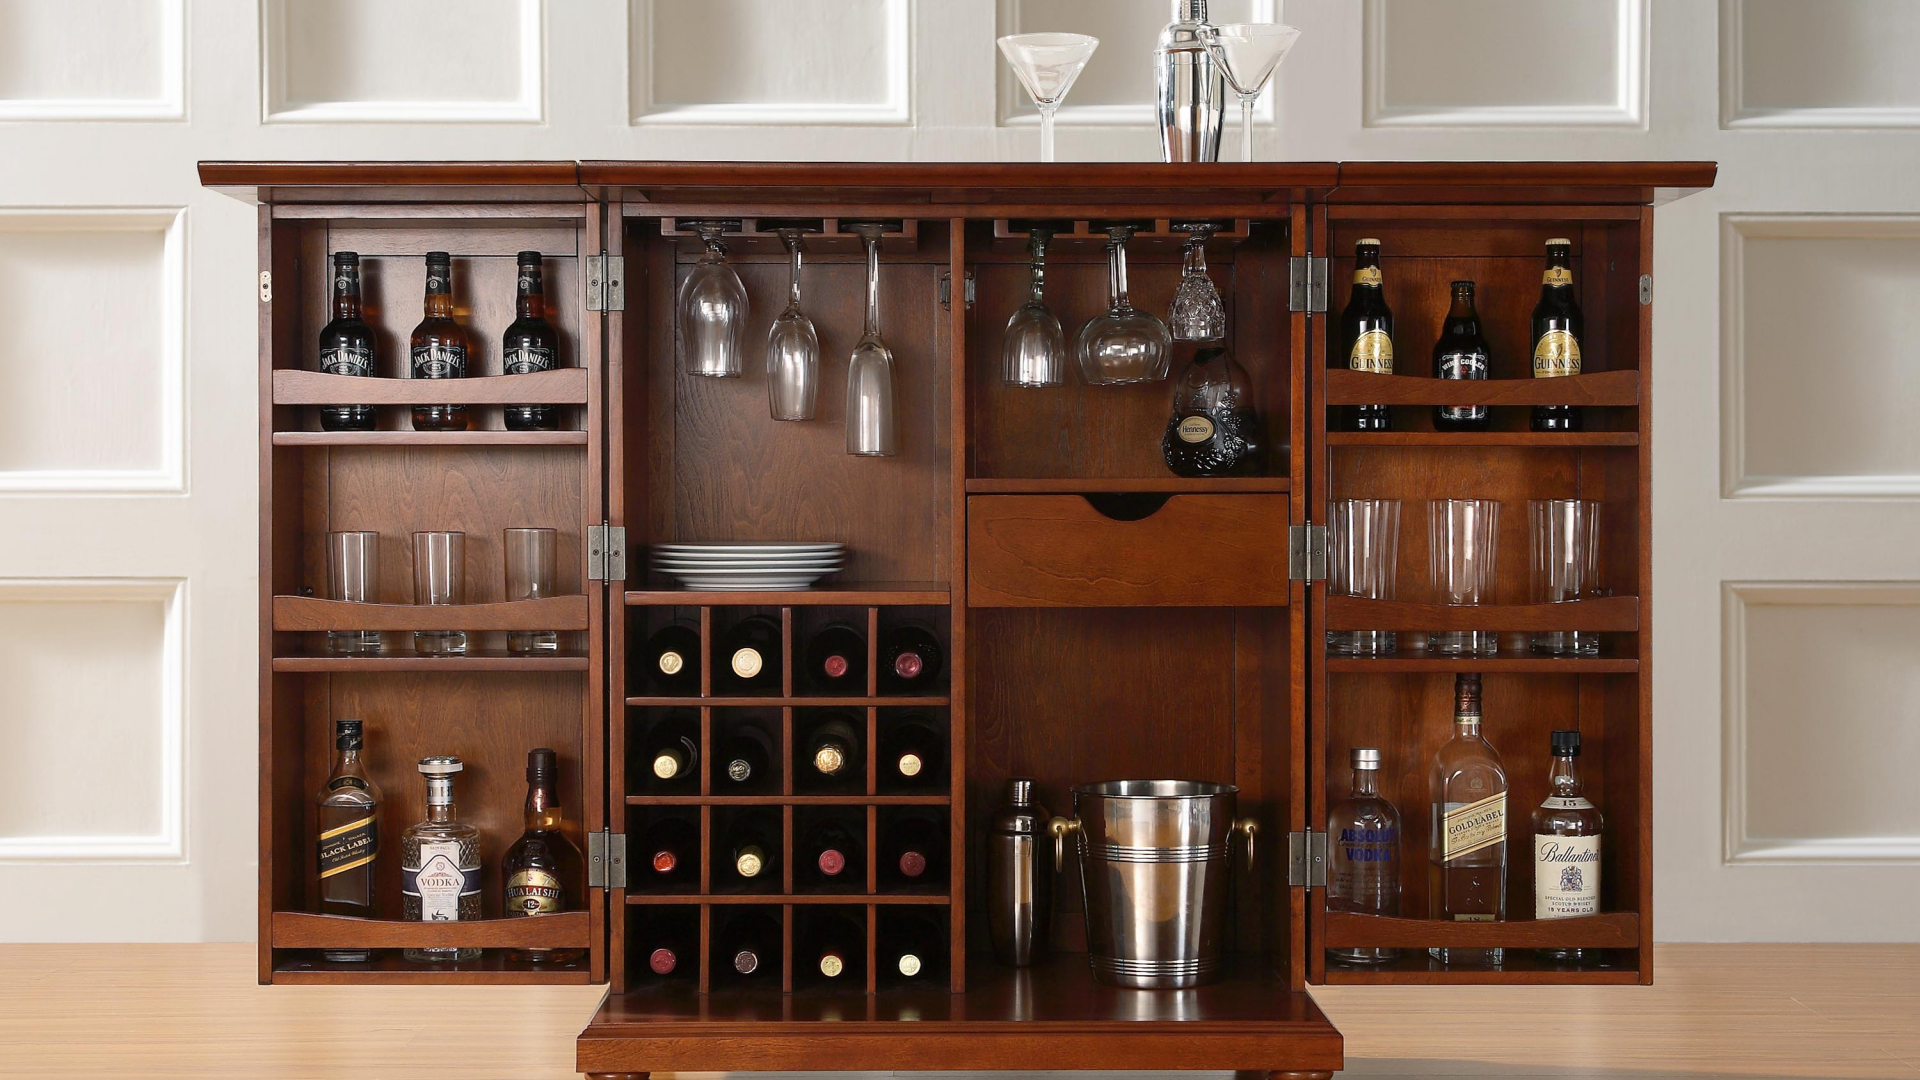 Free Download Home Bar Furniture Design Ideas Home Bars Furniture Design Wallpaper 3000x2400 For Your Desktop Mobile Tablet Explore 46 Wallpaper For Home Bars Wallpaper For Decorating Walls Wallpaper